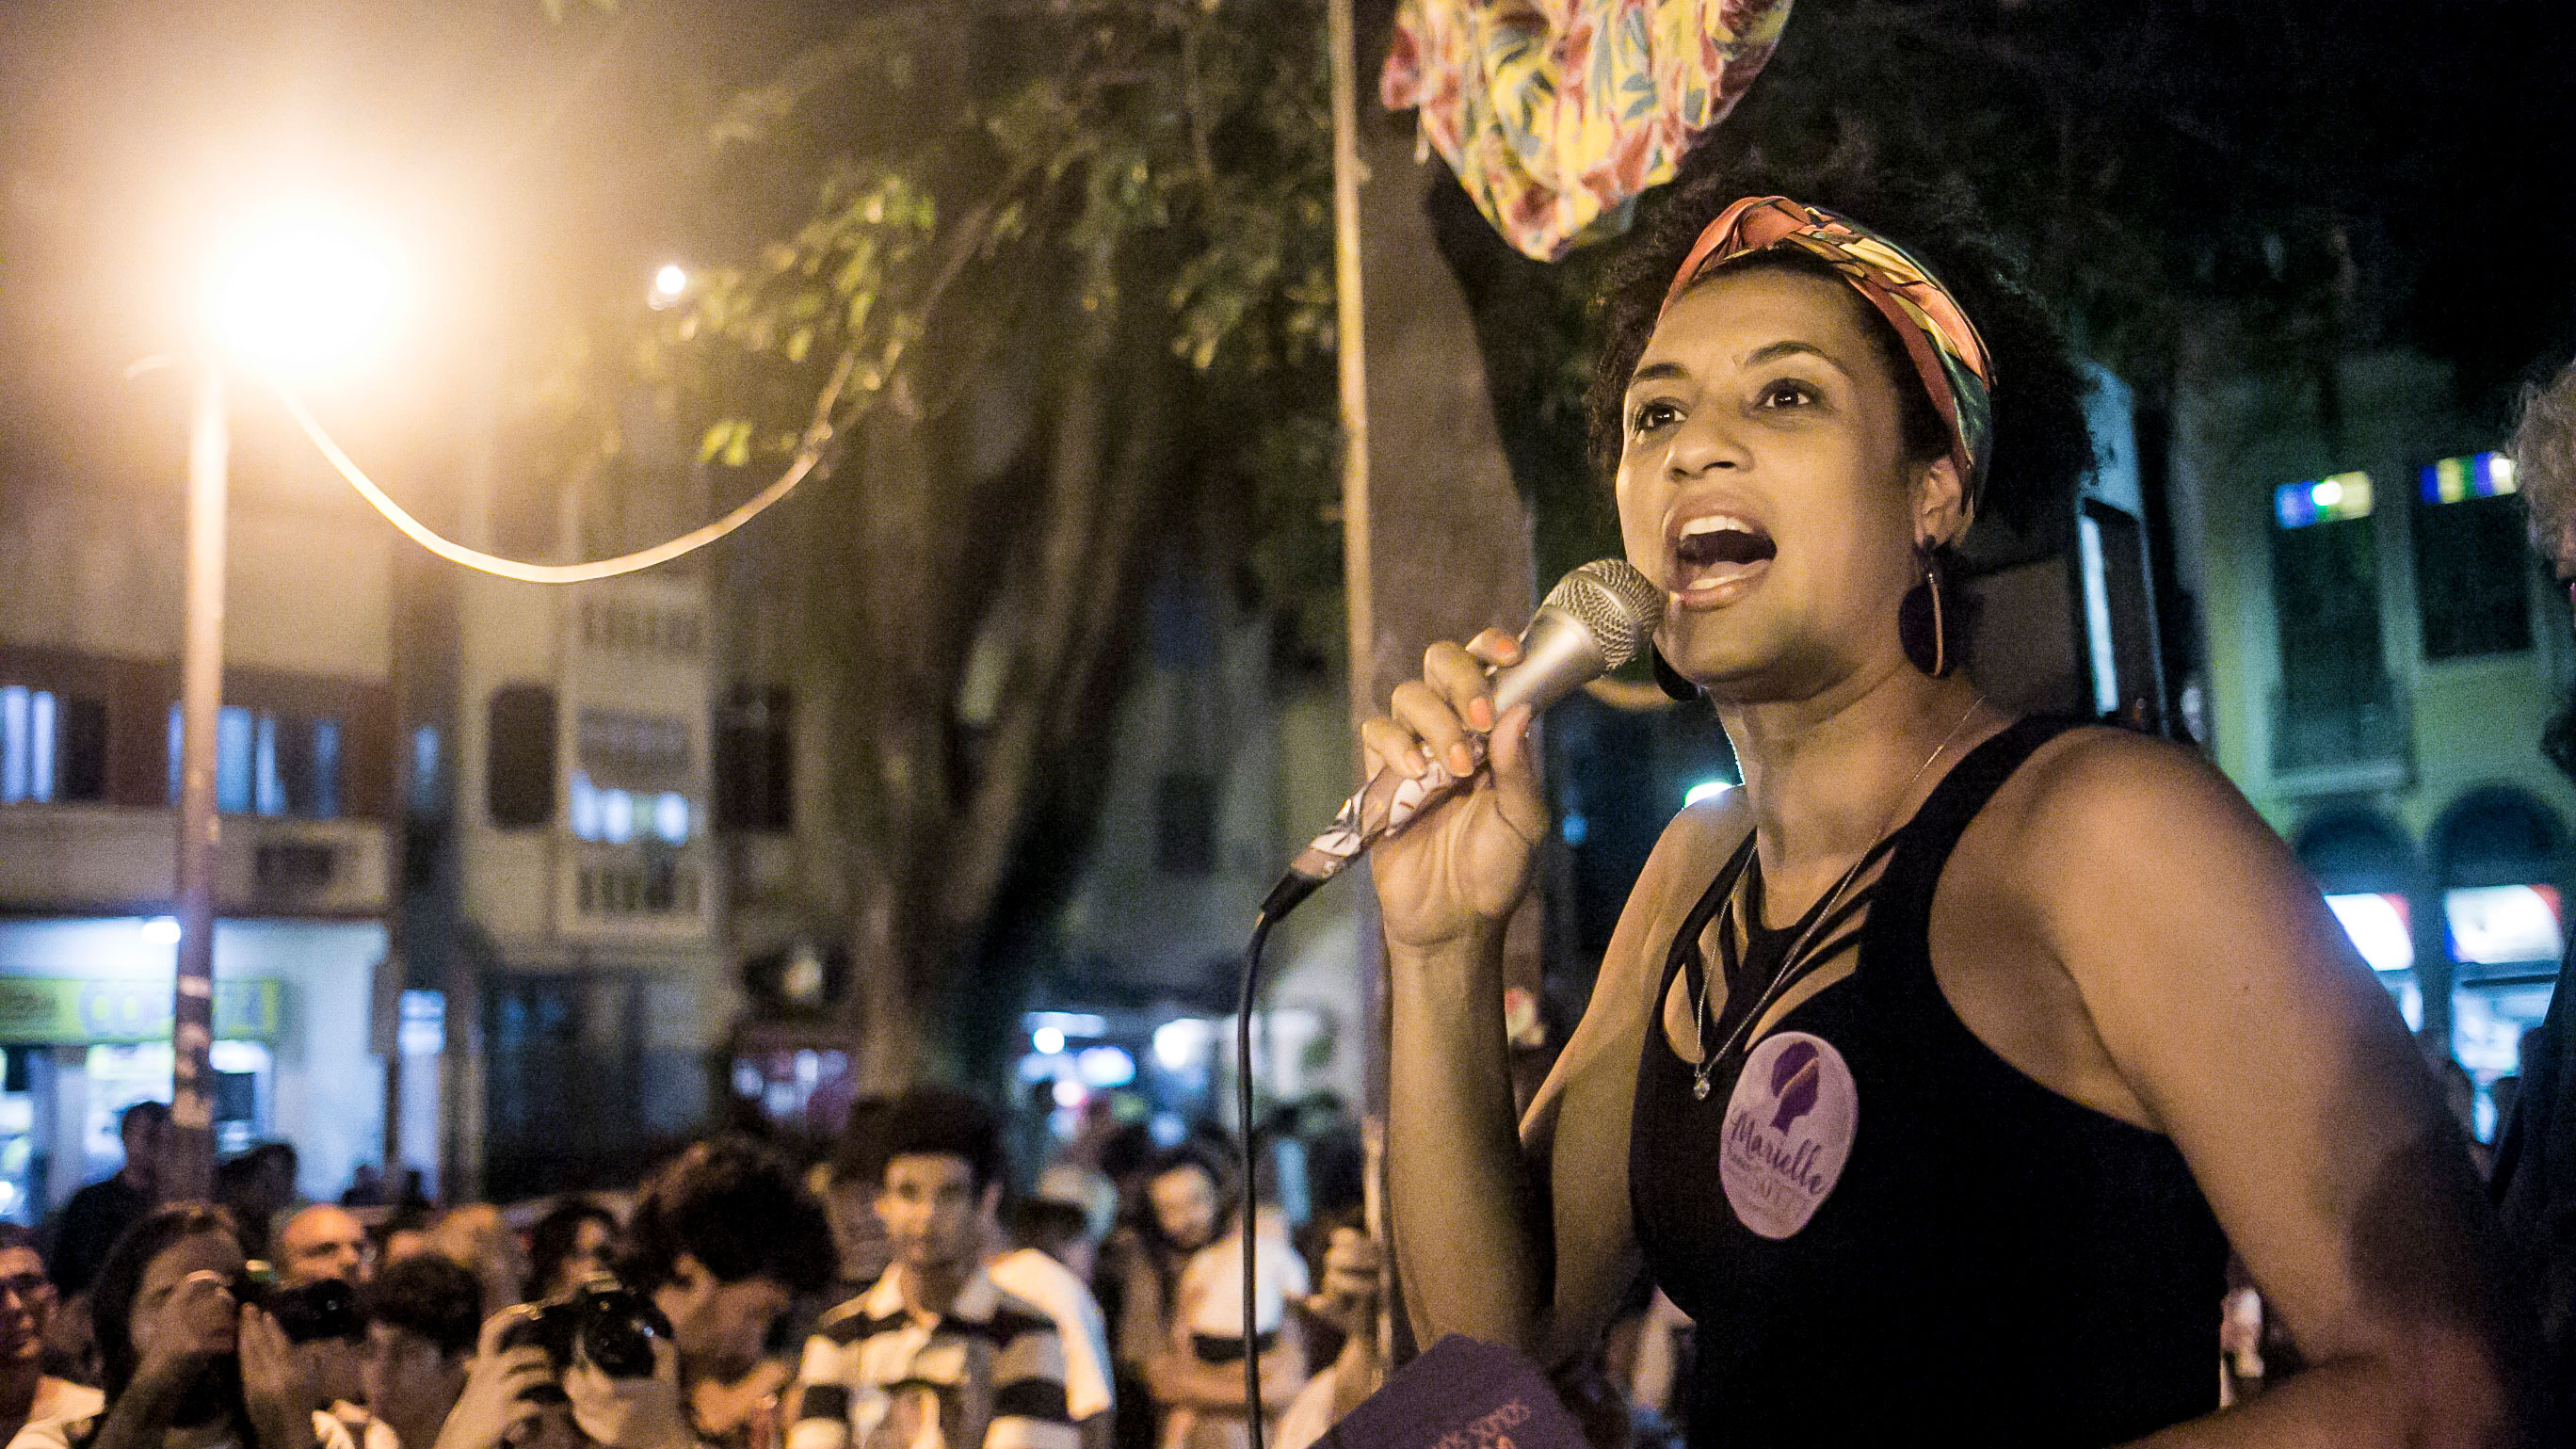 One year after Marielle Franco's death, Brazil's human rights activists demand answers